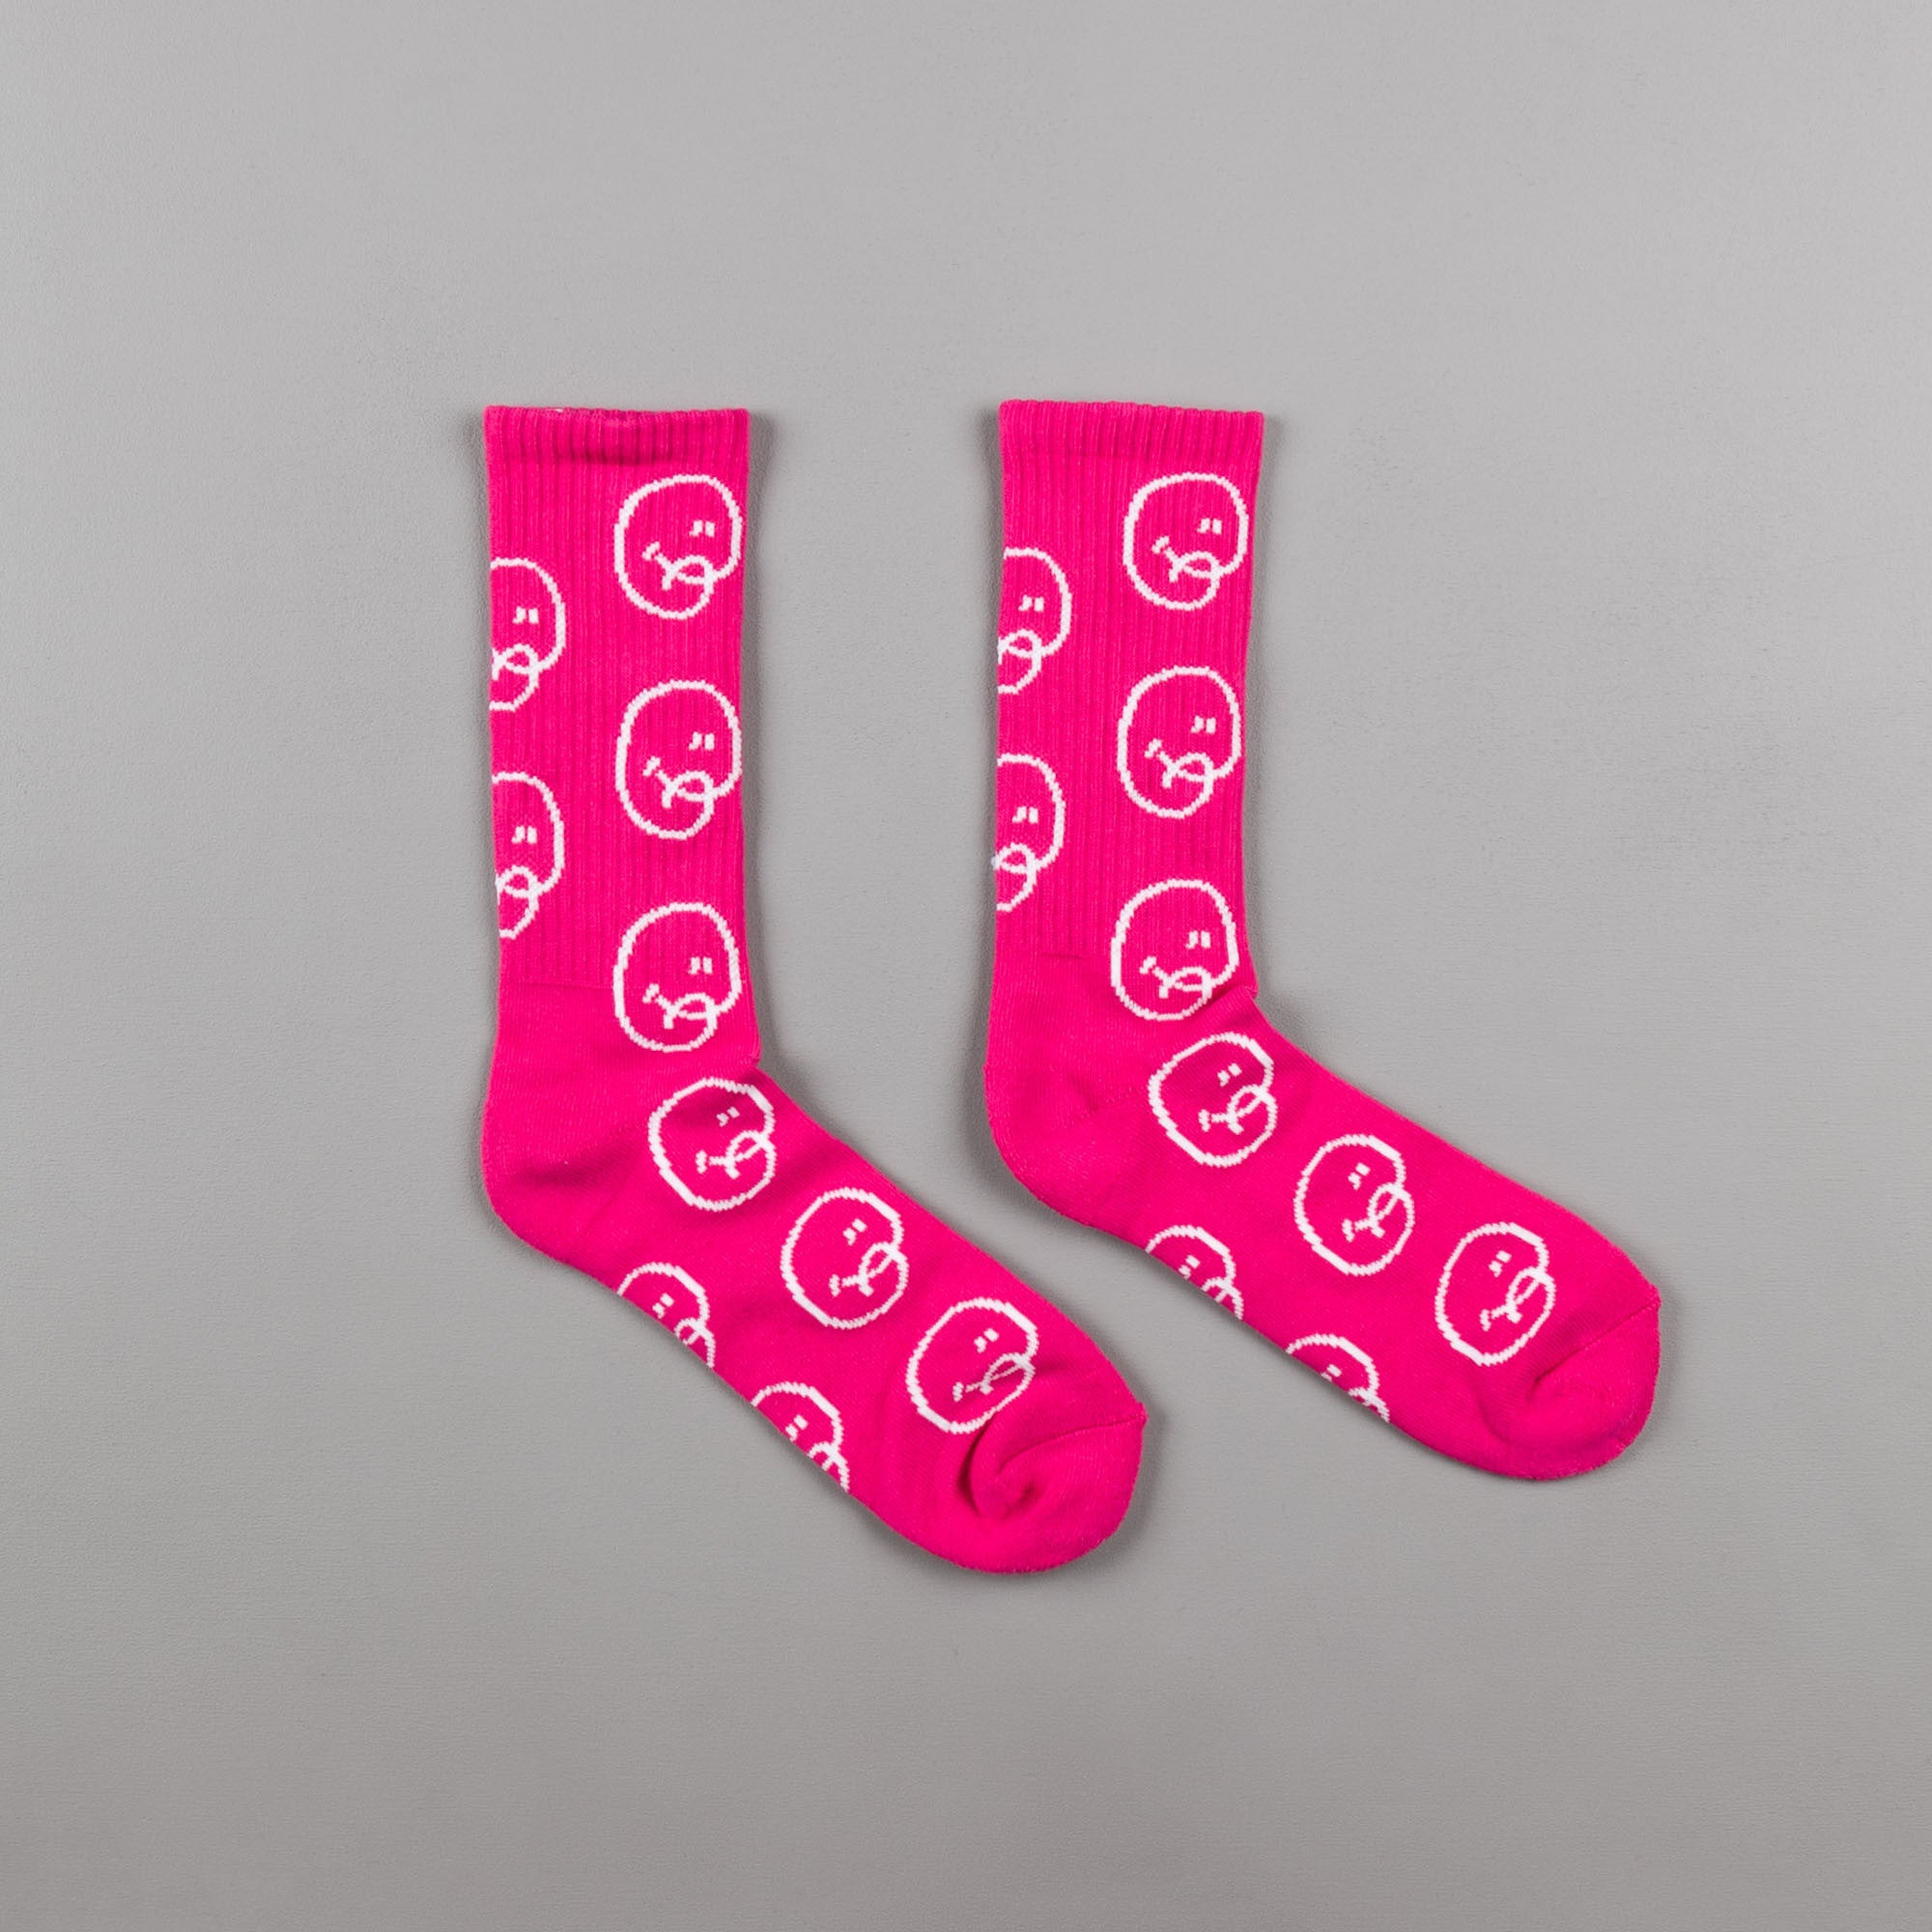 Chrystie NYC Bubble Man Socks (2-Pack) - Black / Pink